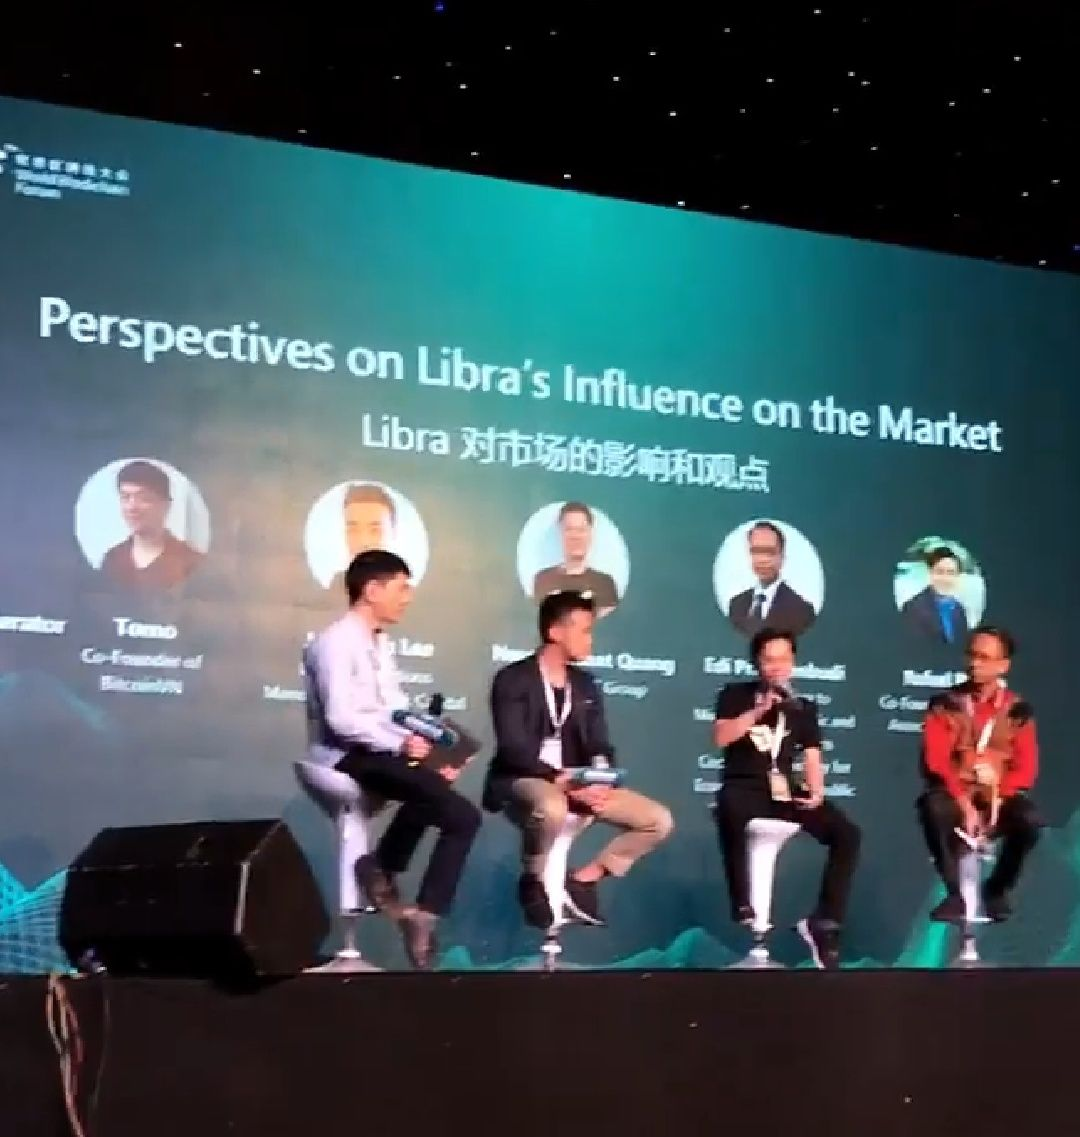 Libra discussion at WBF